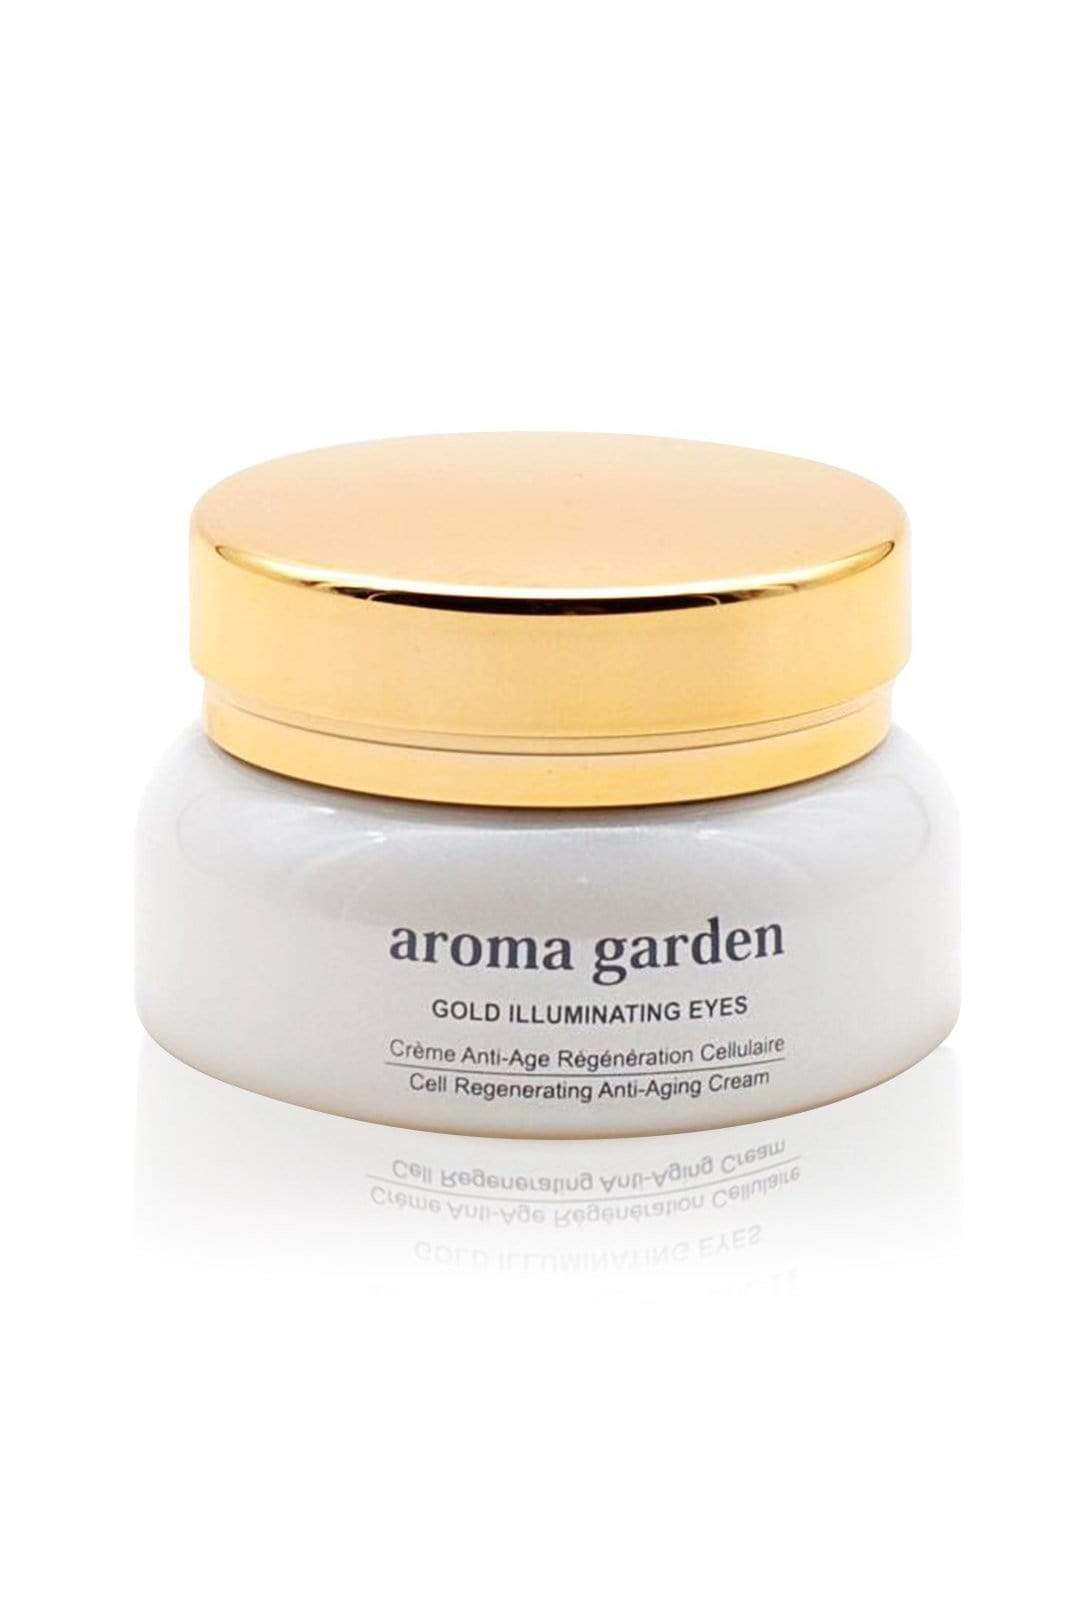 aroma garden cream Organic Anti-Aging Cream for eyes 'Gold Illuminating'. sustainable fashion ethical fashion